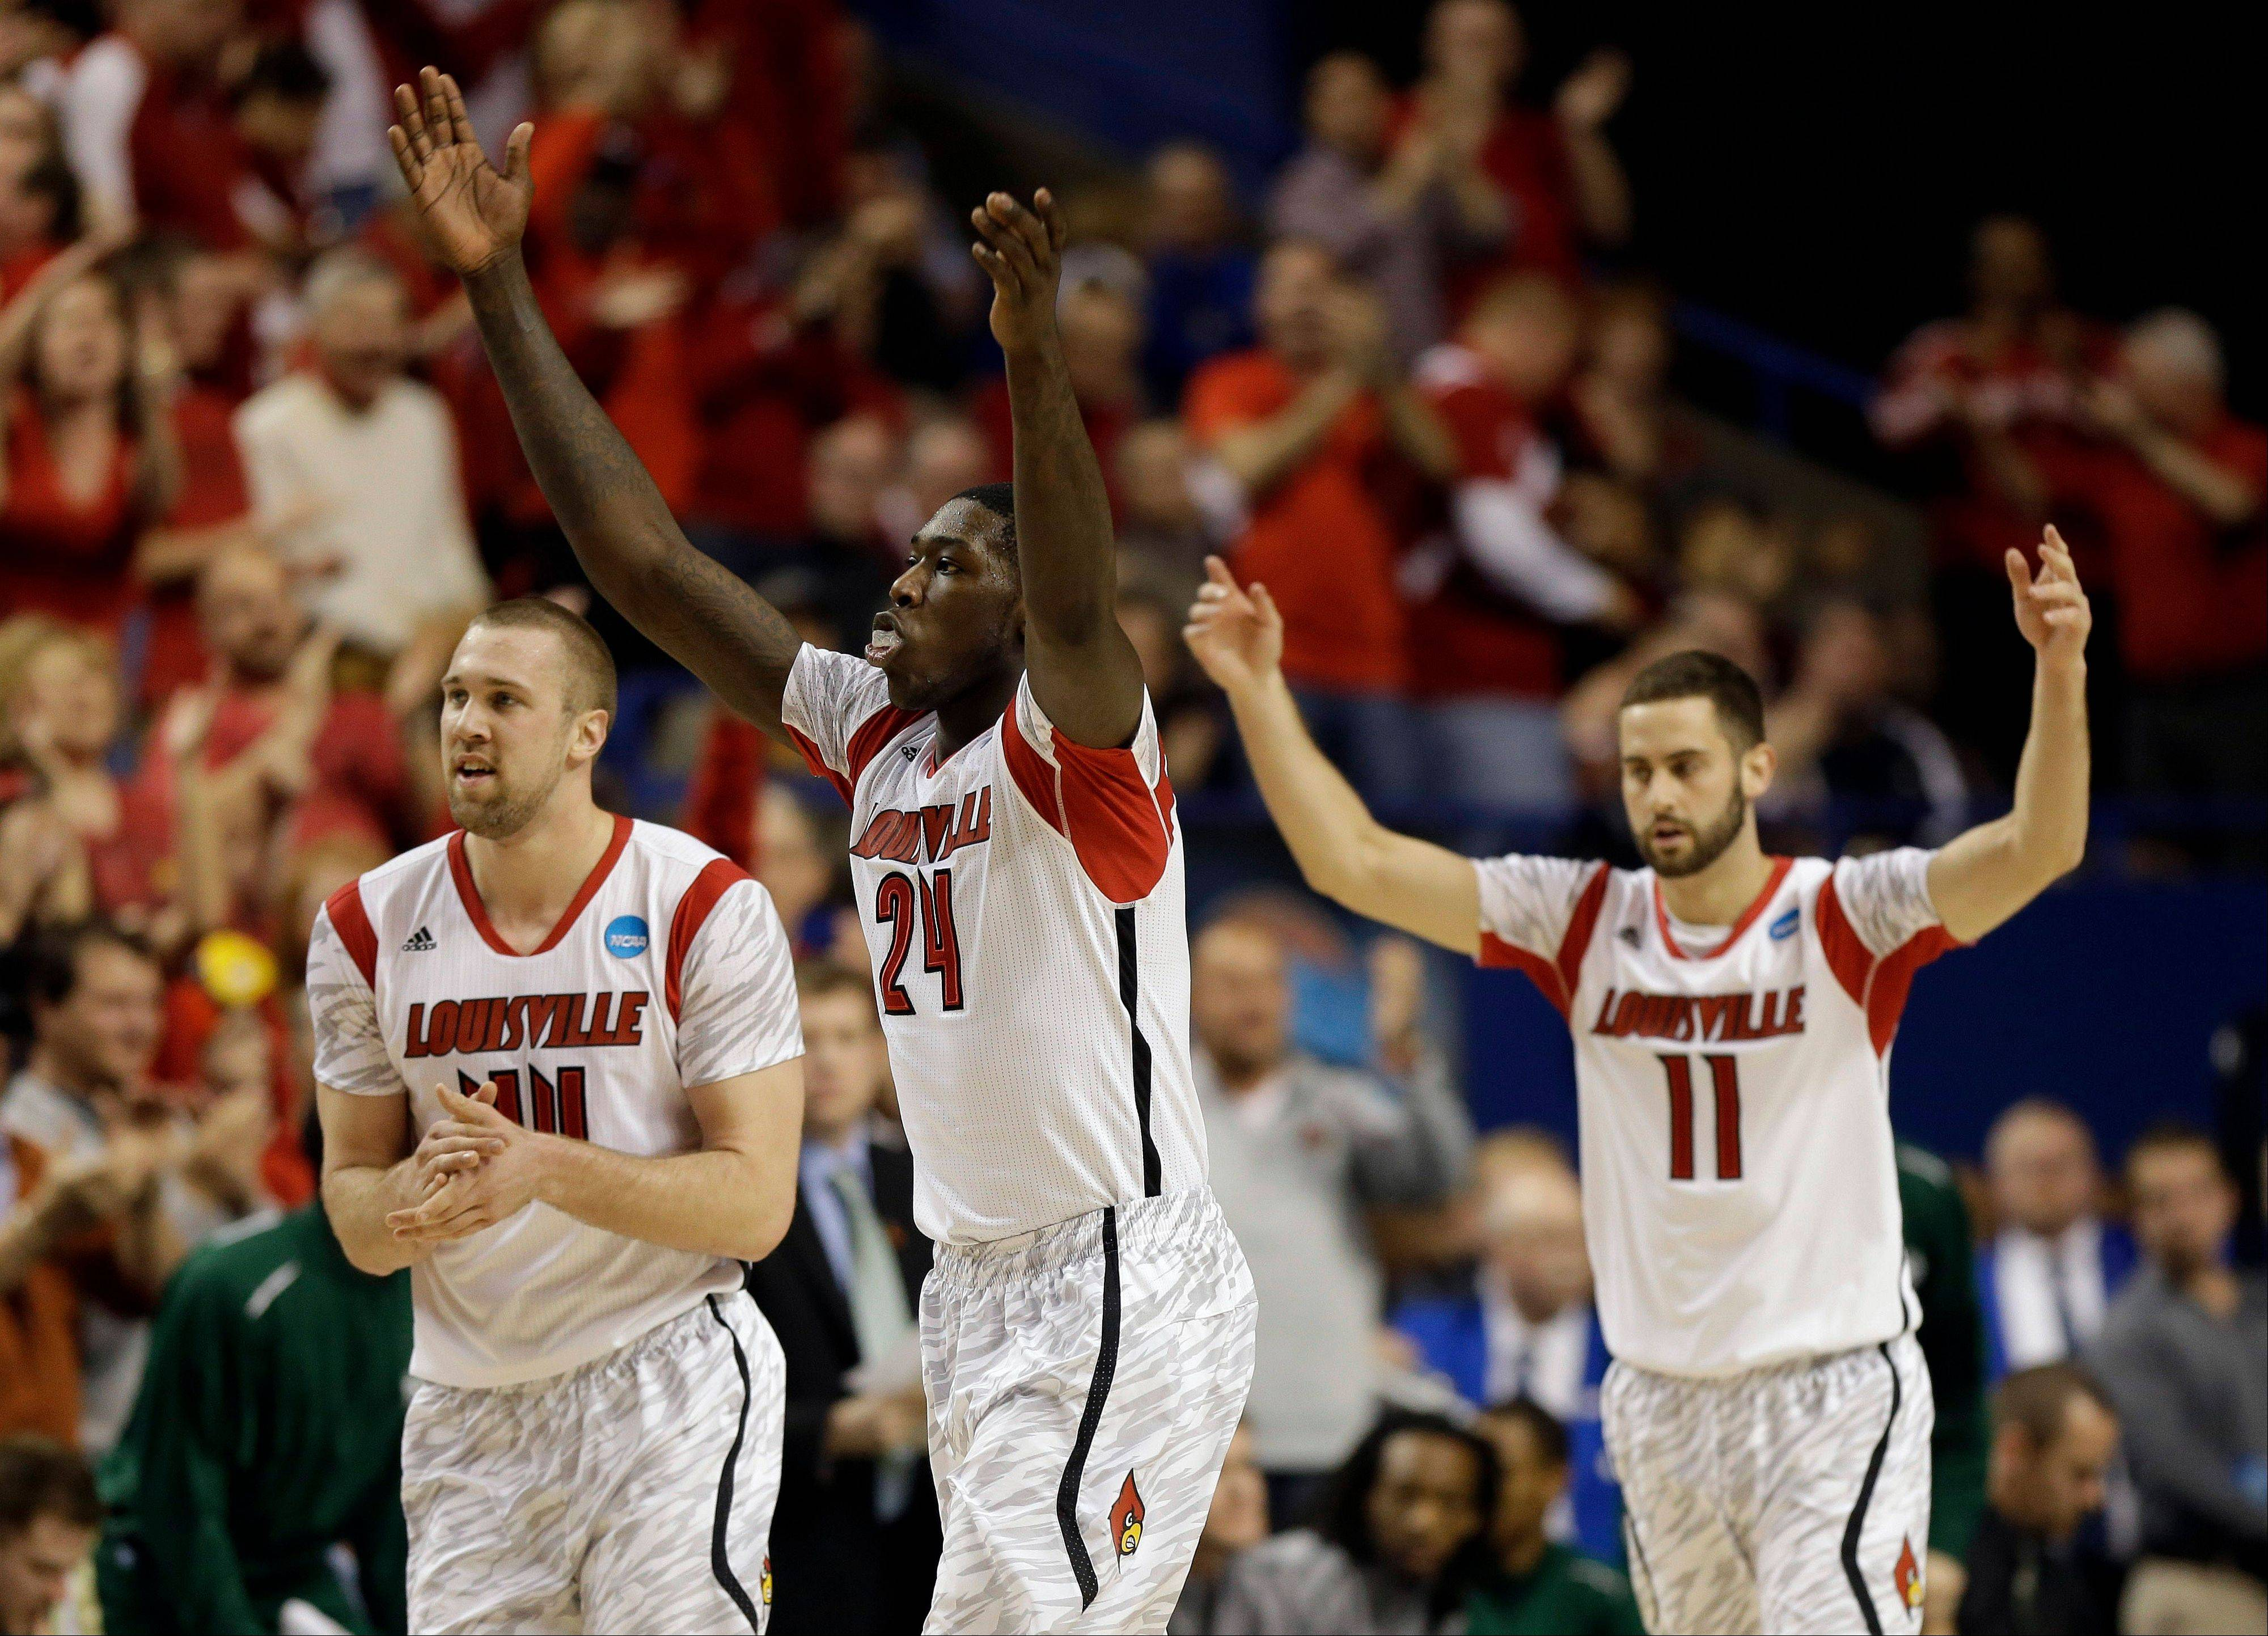 From left to right, Louisville's Stephan Van Treese, Montrezl Harrell and Luke Hancock react after a basket in the first half of a third-round NCAA college basketball tournament game against Colorado State, Saturday, March 23, 2013, in Lexington, Ky.